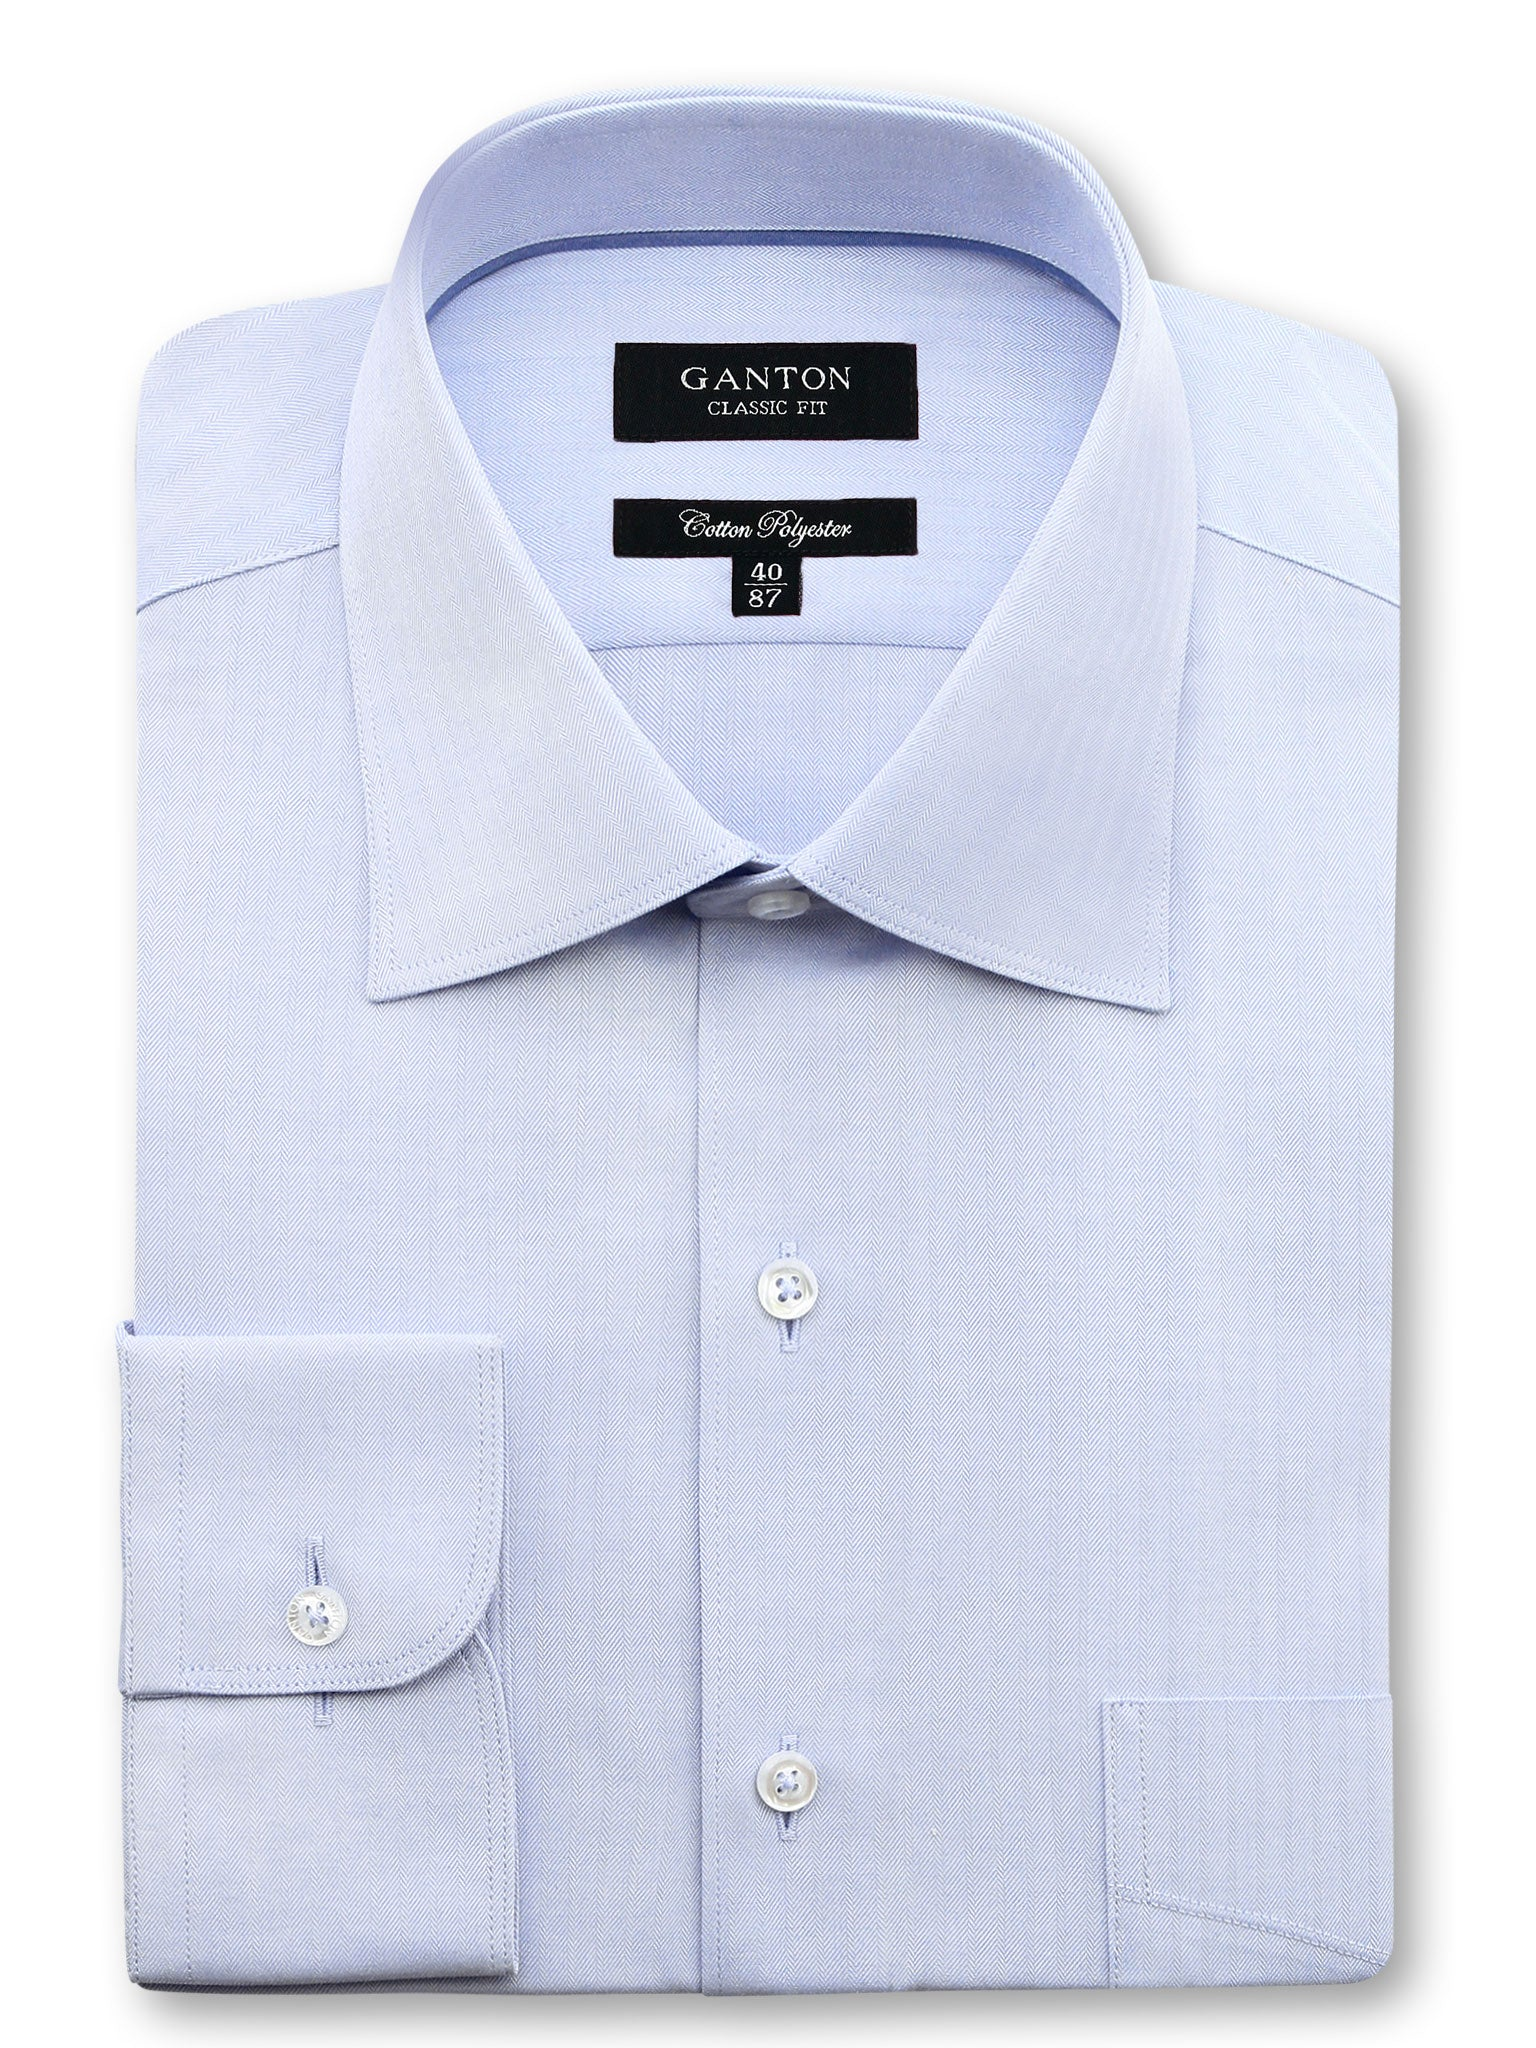 All Light Blue Textured Classic Fit Mark Cotton Polyester Shirt